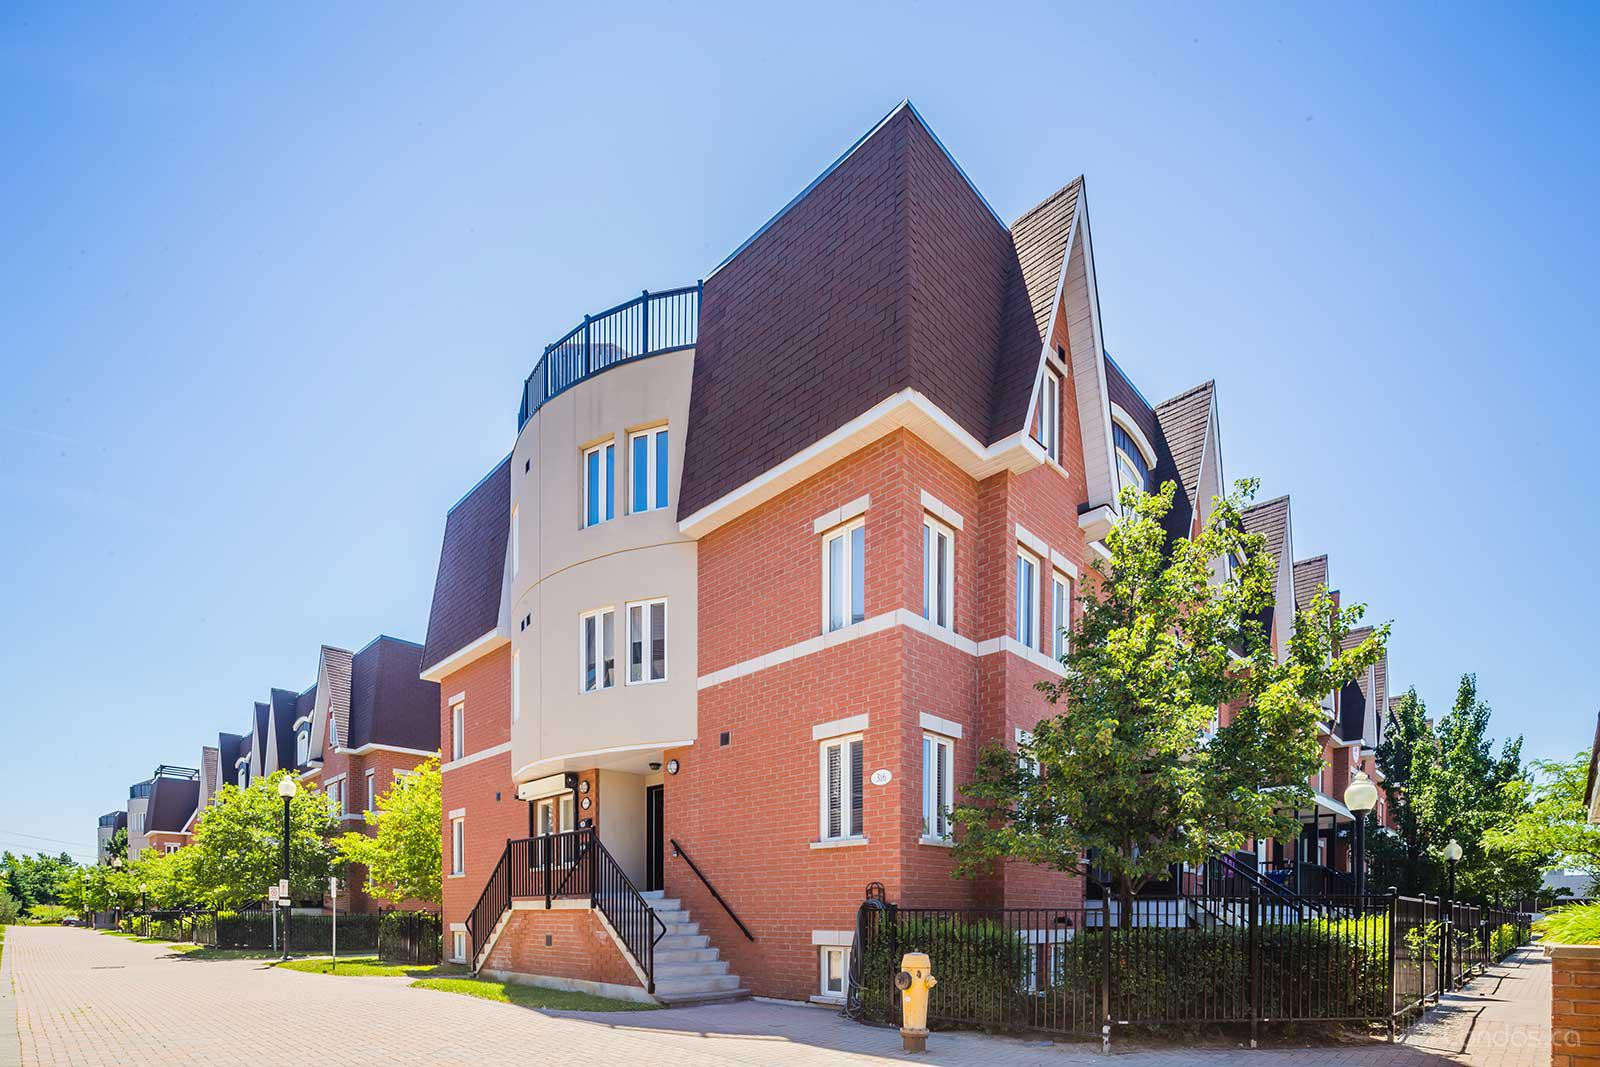 Townhomes of Thornhill Village at 308 John St, Markham 0